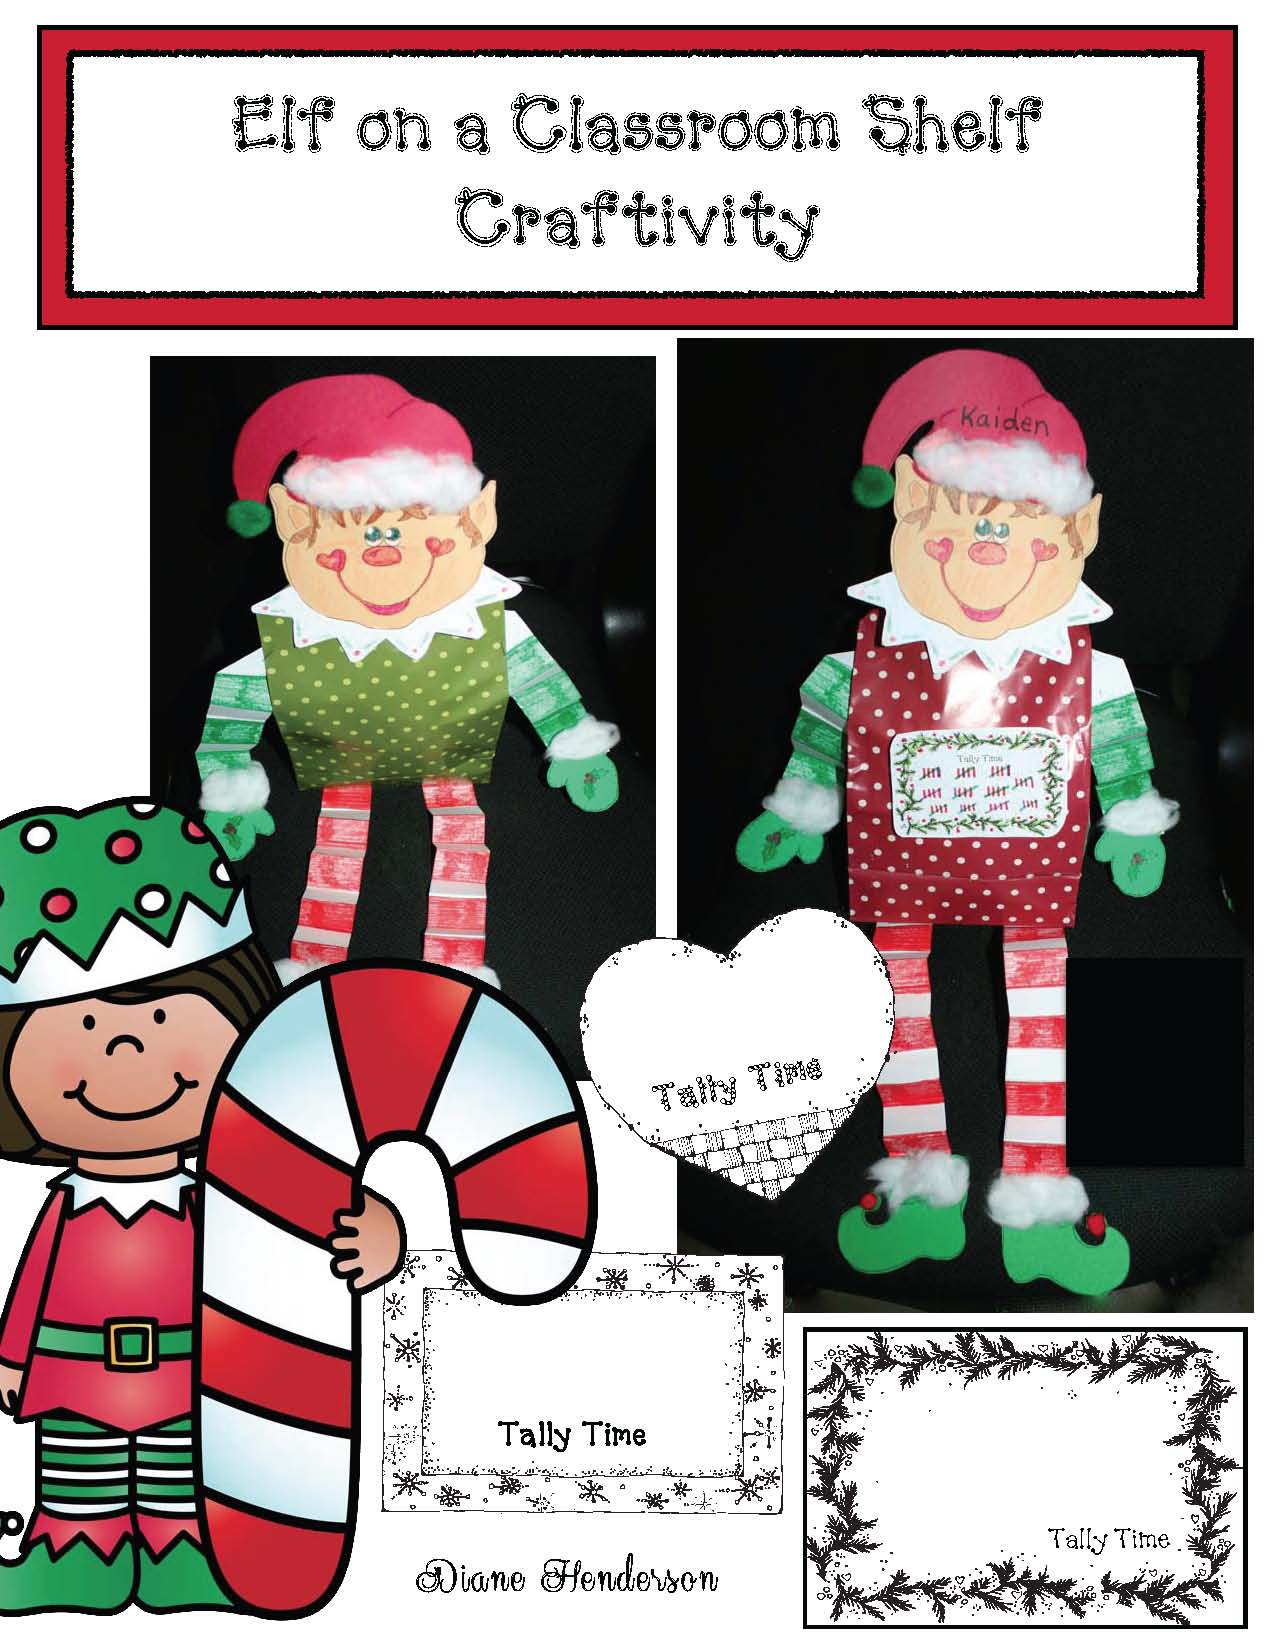 elf on a shelf activities, elf activities, classroom management ideas, elf crafts, christmas crafts